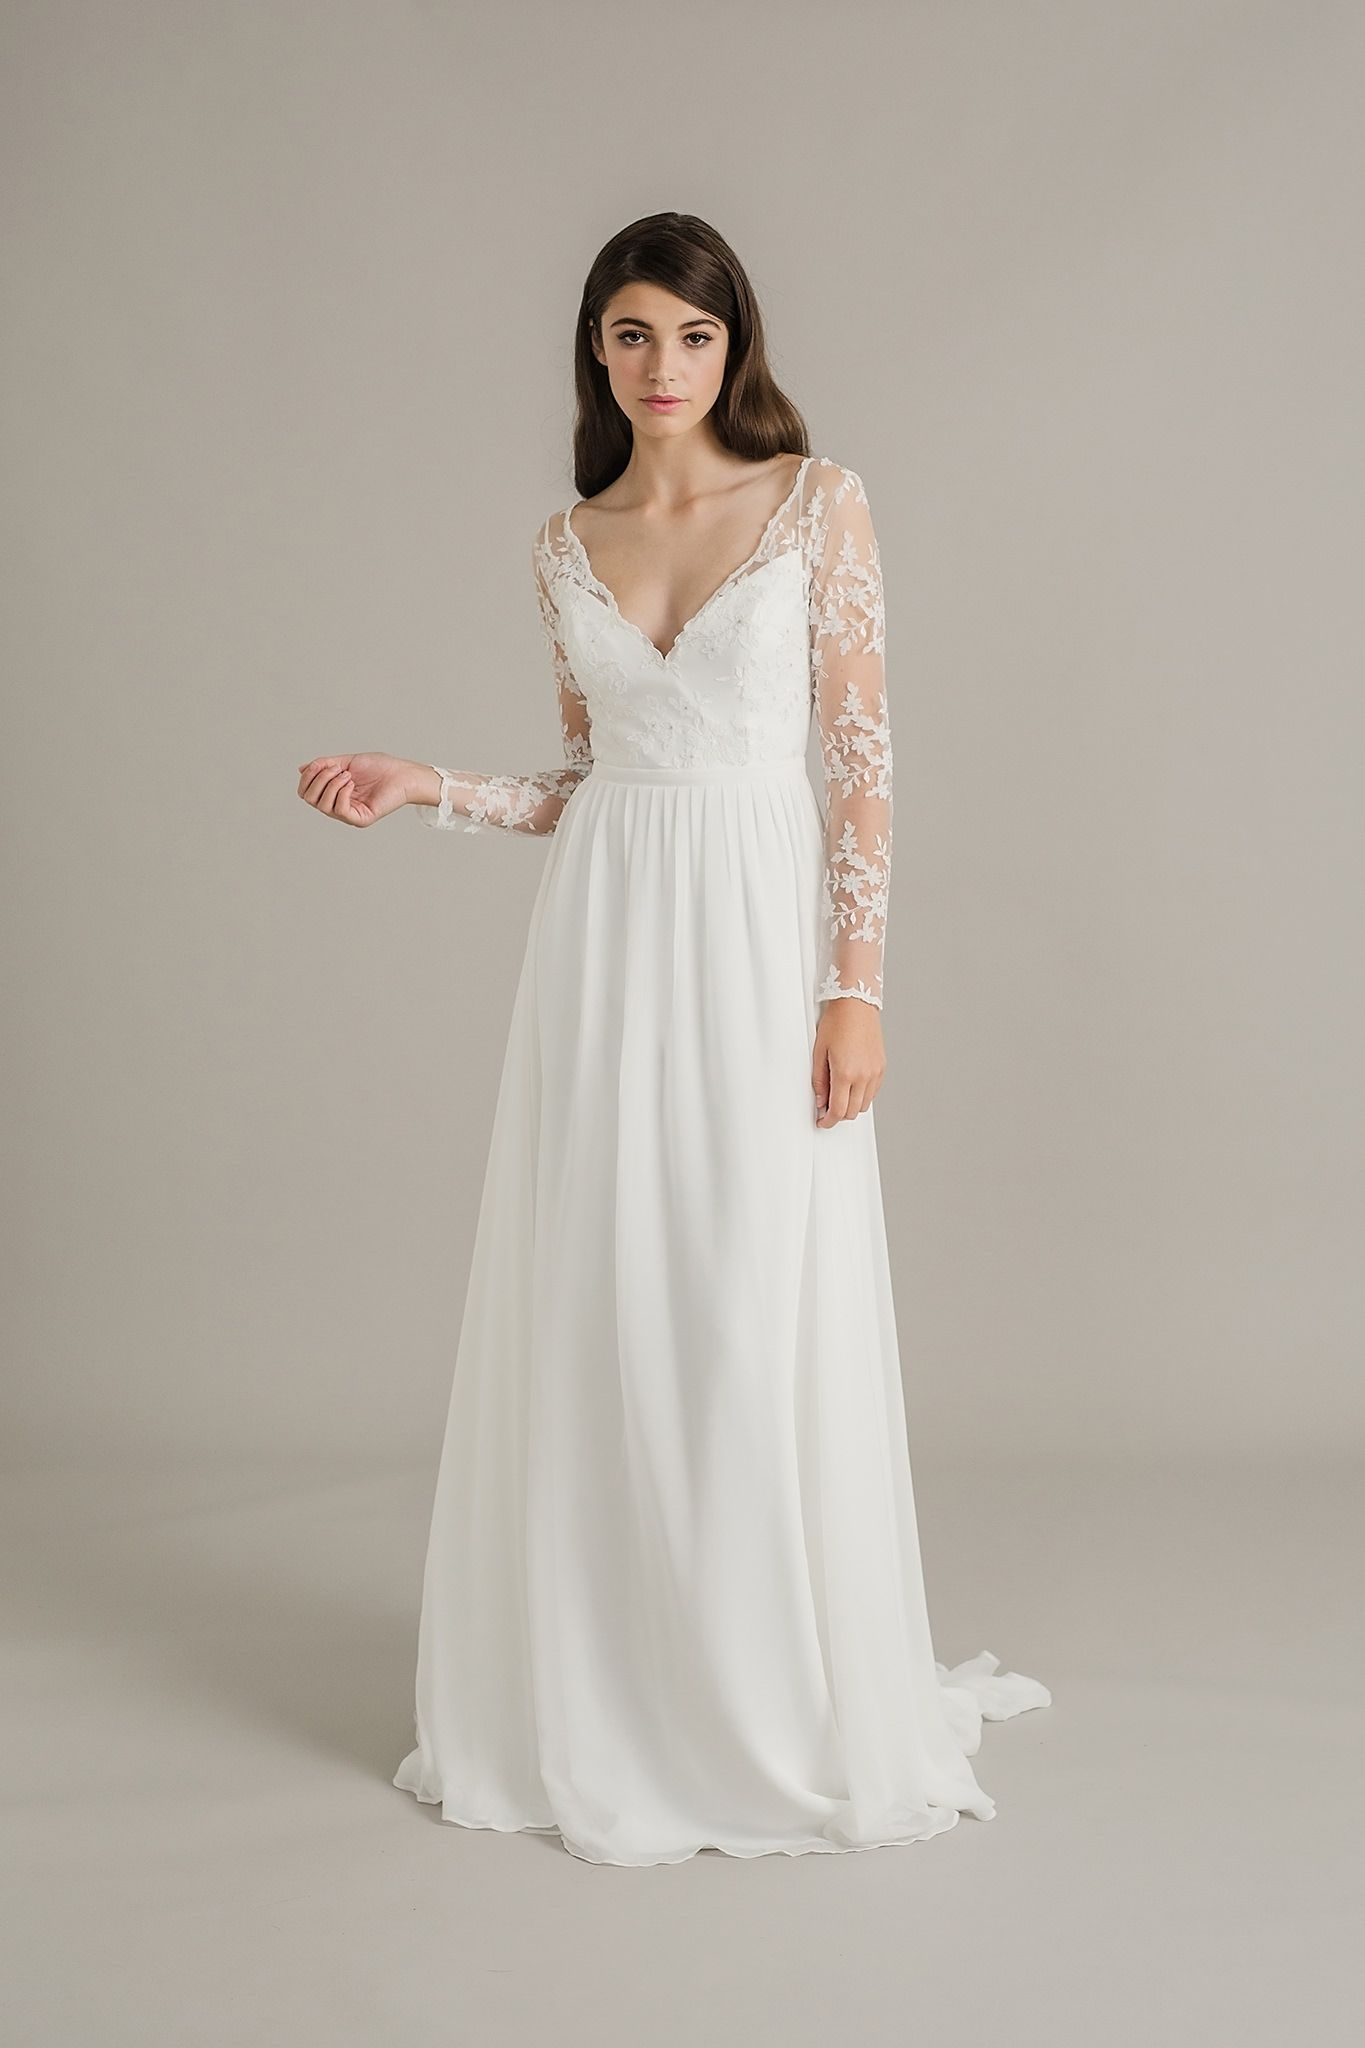 Sally Eagle Wedding Dress Collection 2017 Dusk Bridal Musings Lace Wedding Dress With Sleeves Long Sleeve Wedding Dress Lace Wedding Dress Long Sleeve